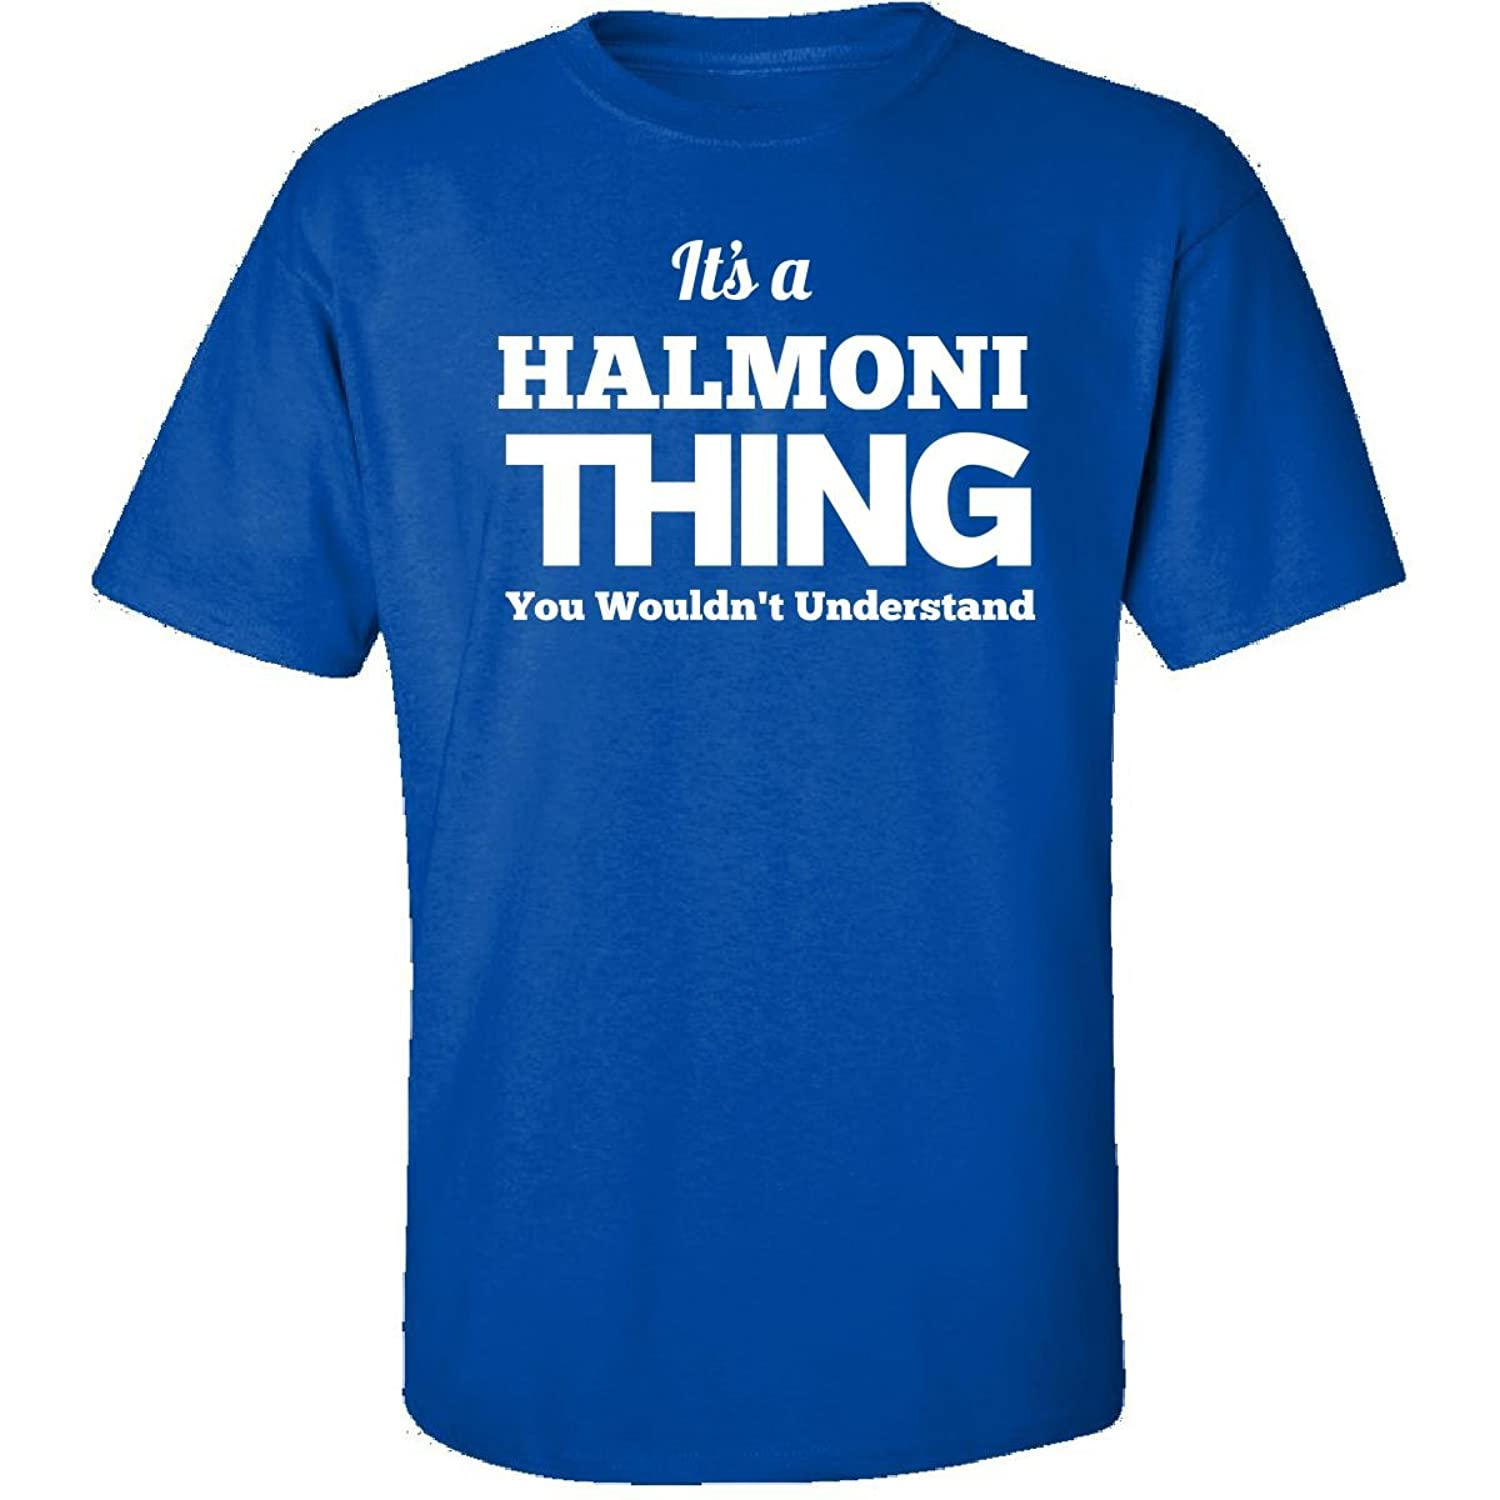 Its A Halmoni Thing You Wouldnt Understand - Adult Shirt